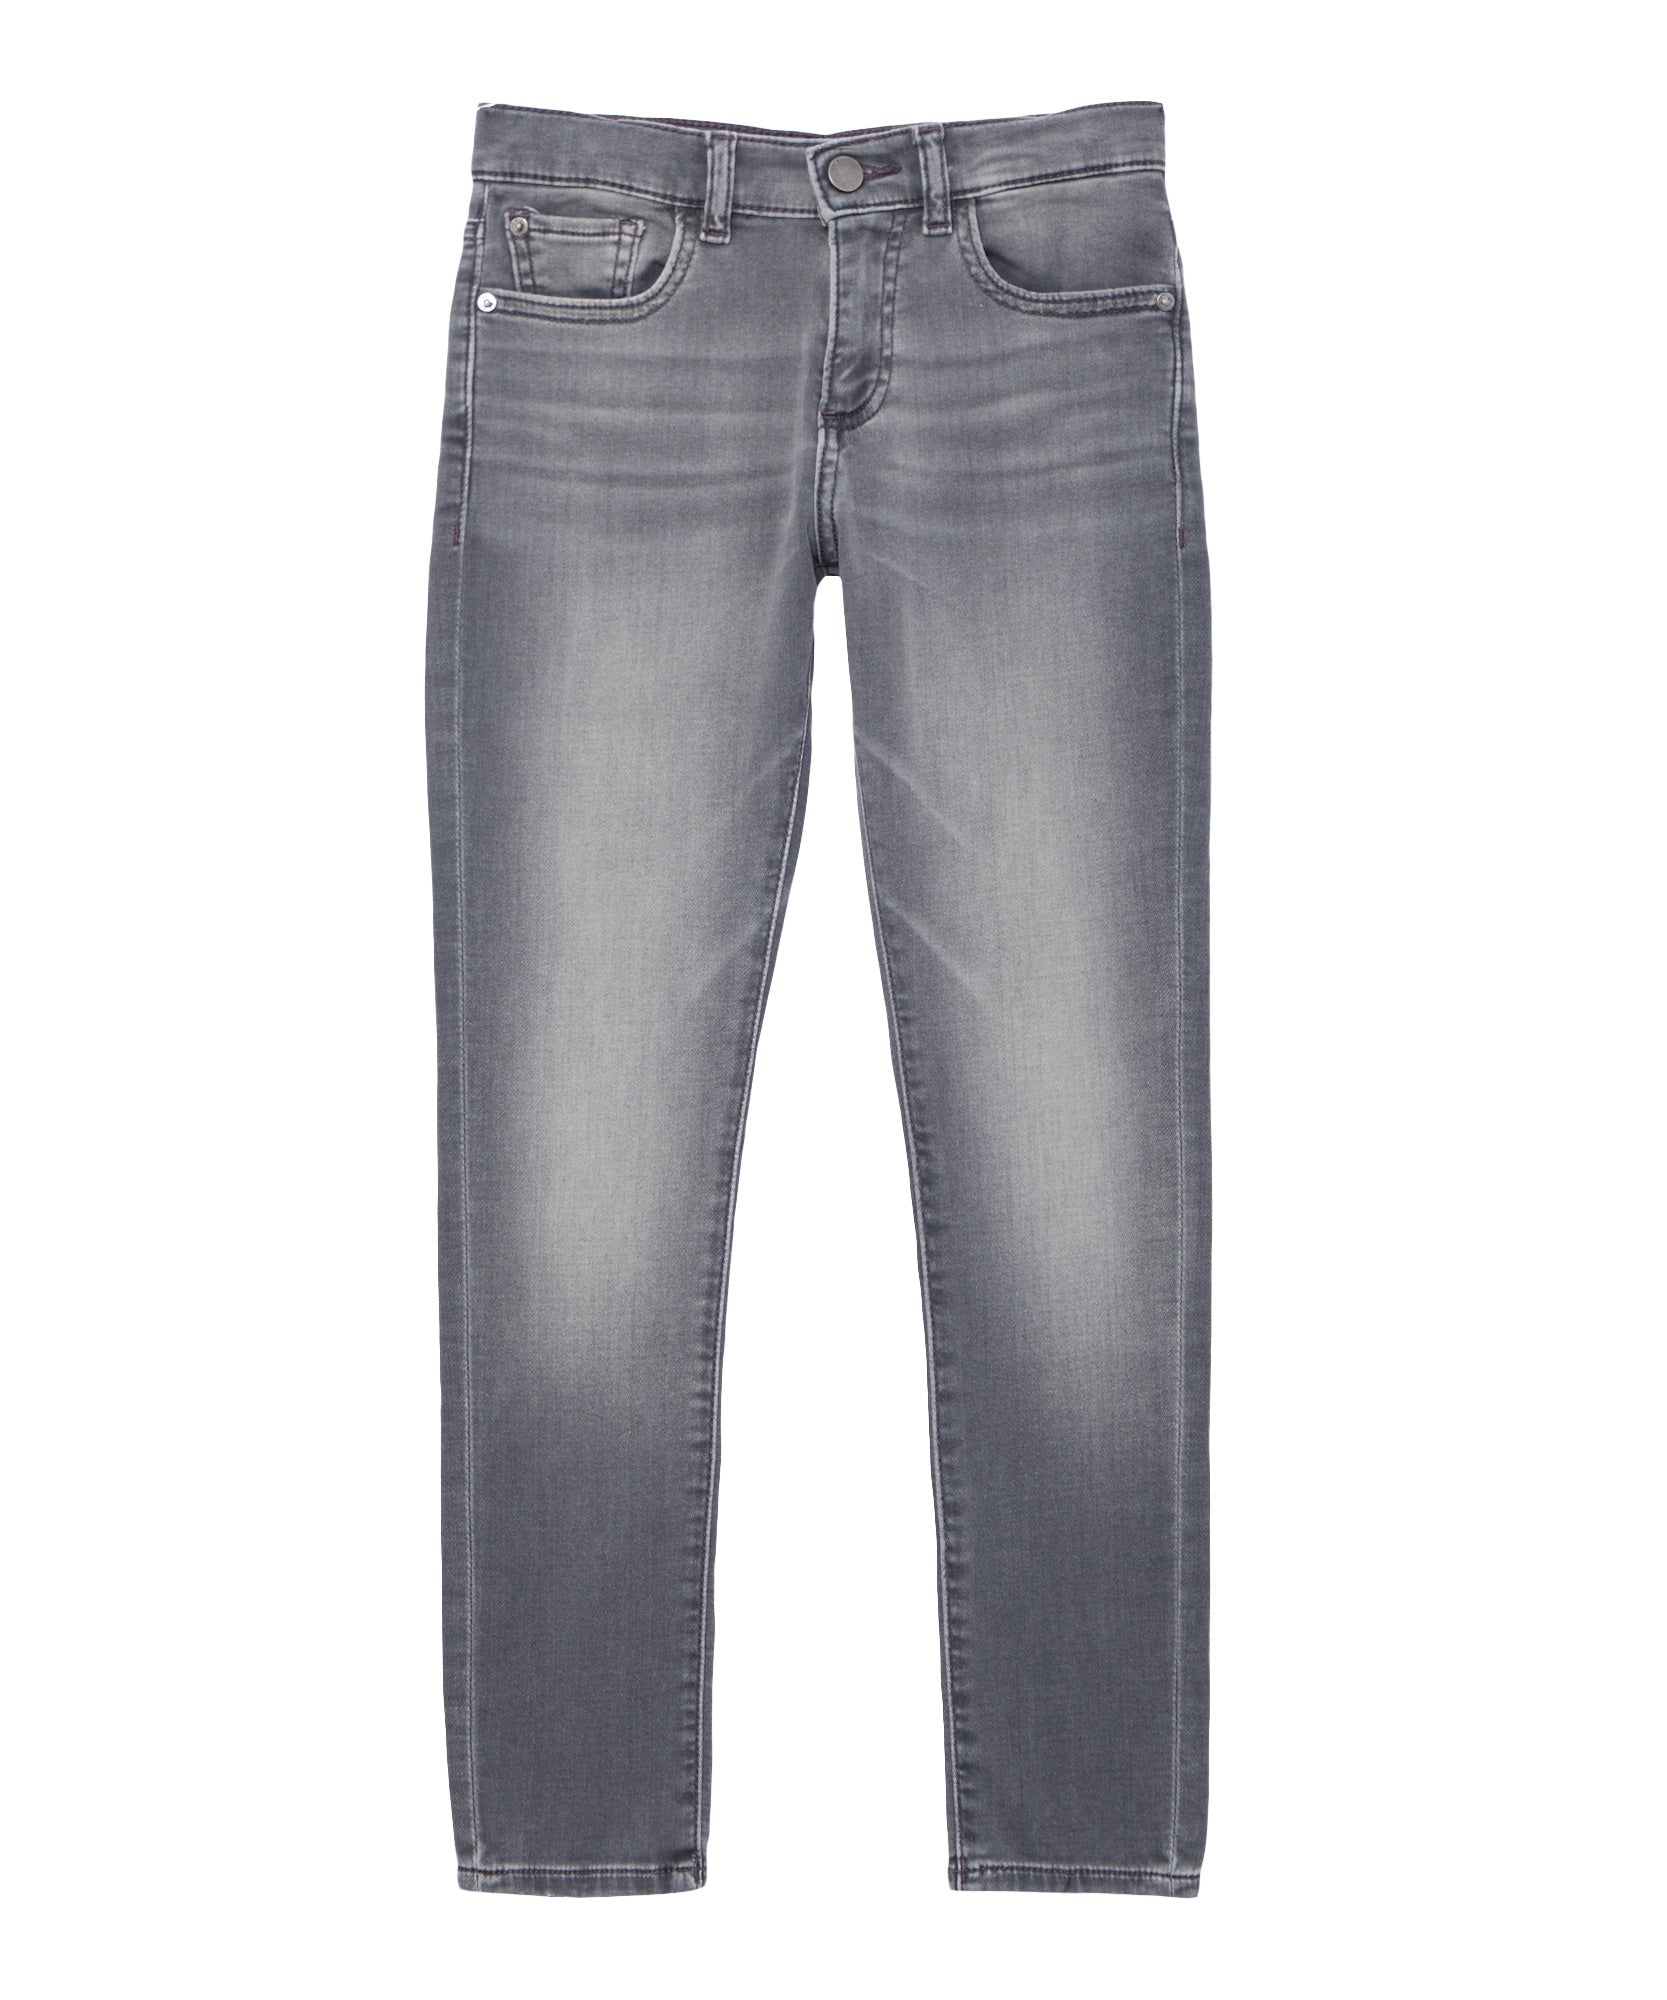 Zane Steel Denim